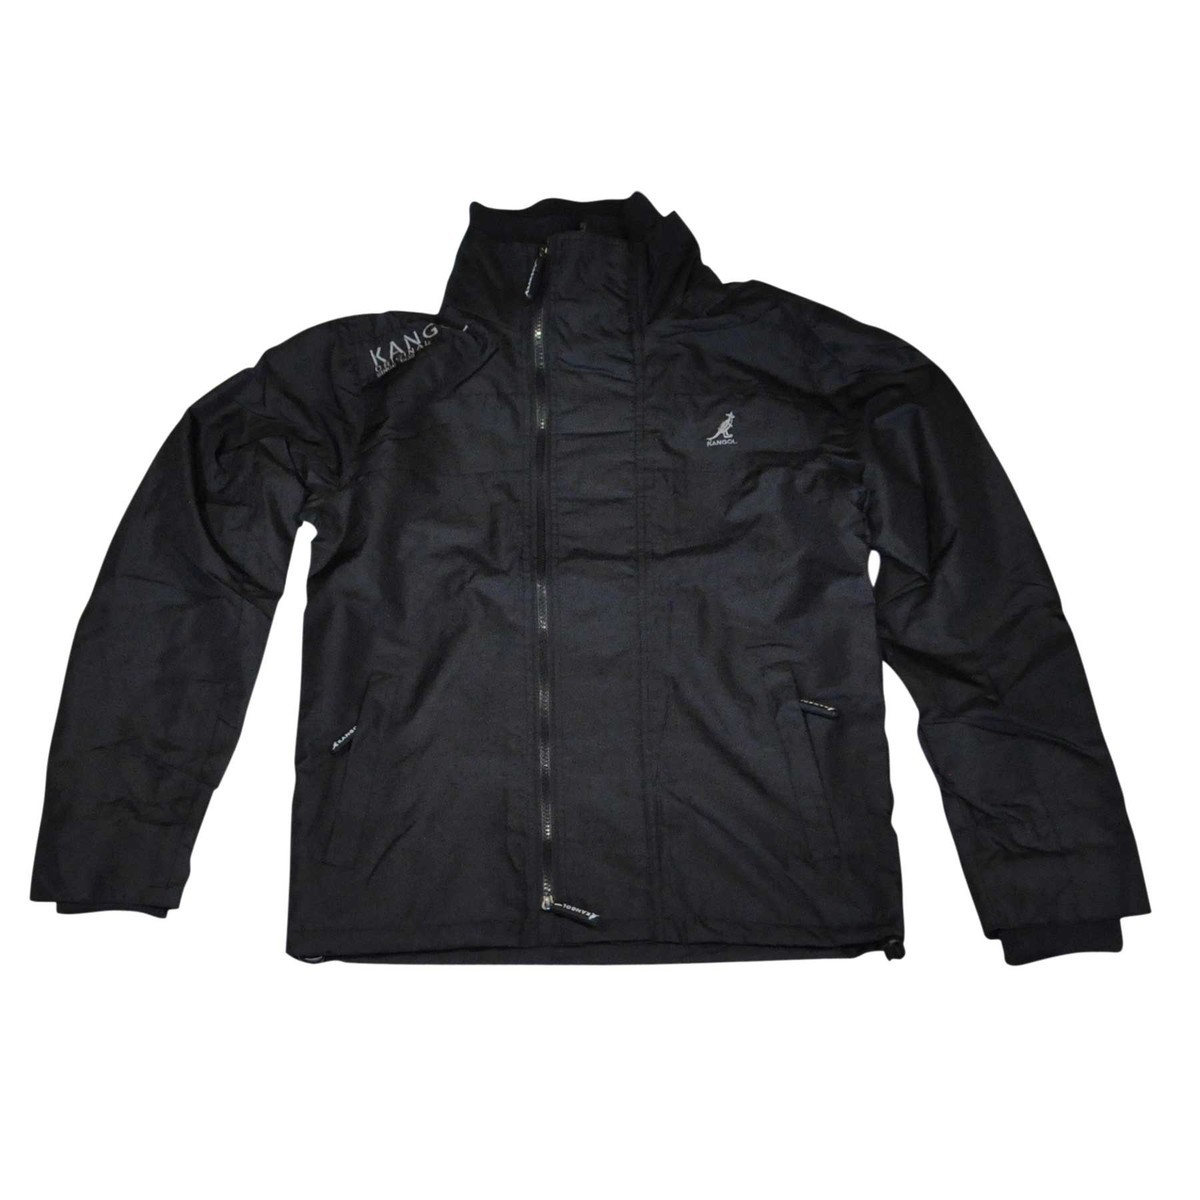 Kangol カンゴール Speed Jacket BLACK Jackets & Vests 帽子 BLACK